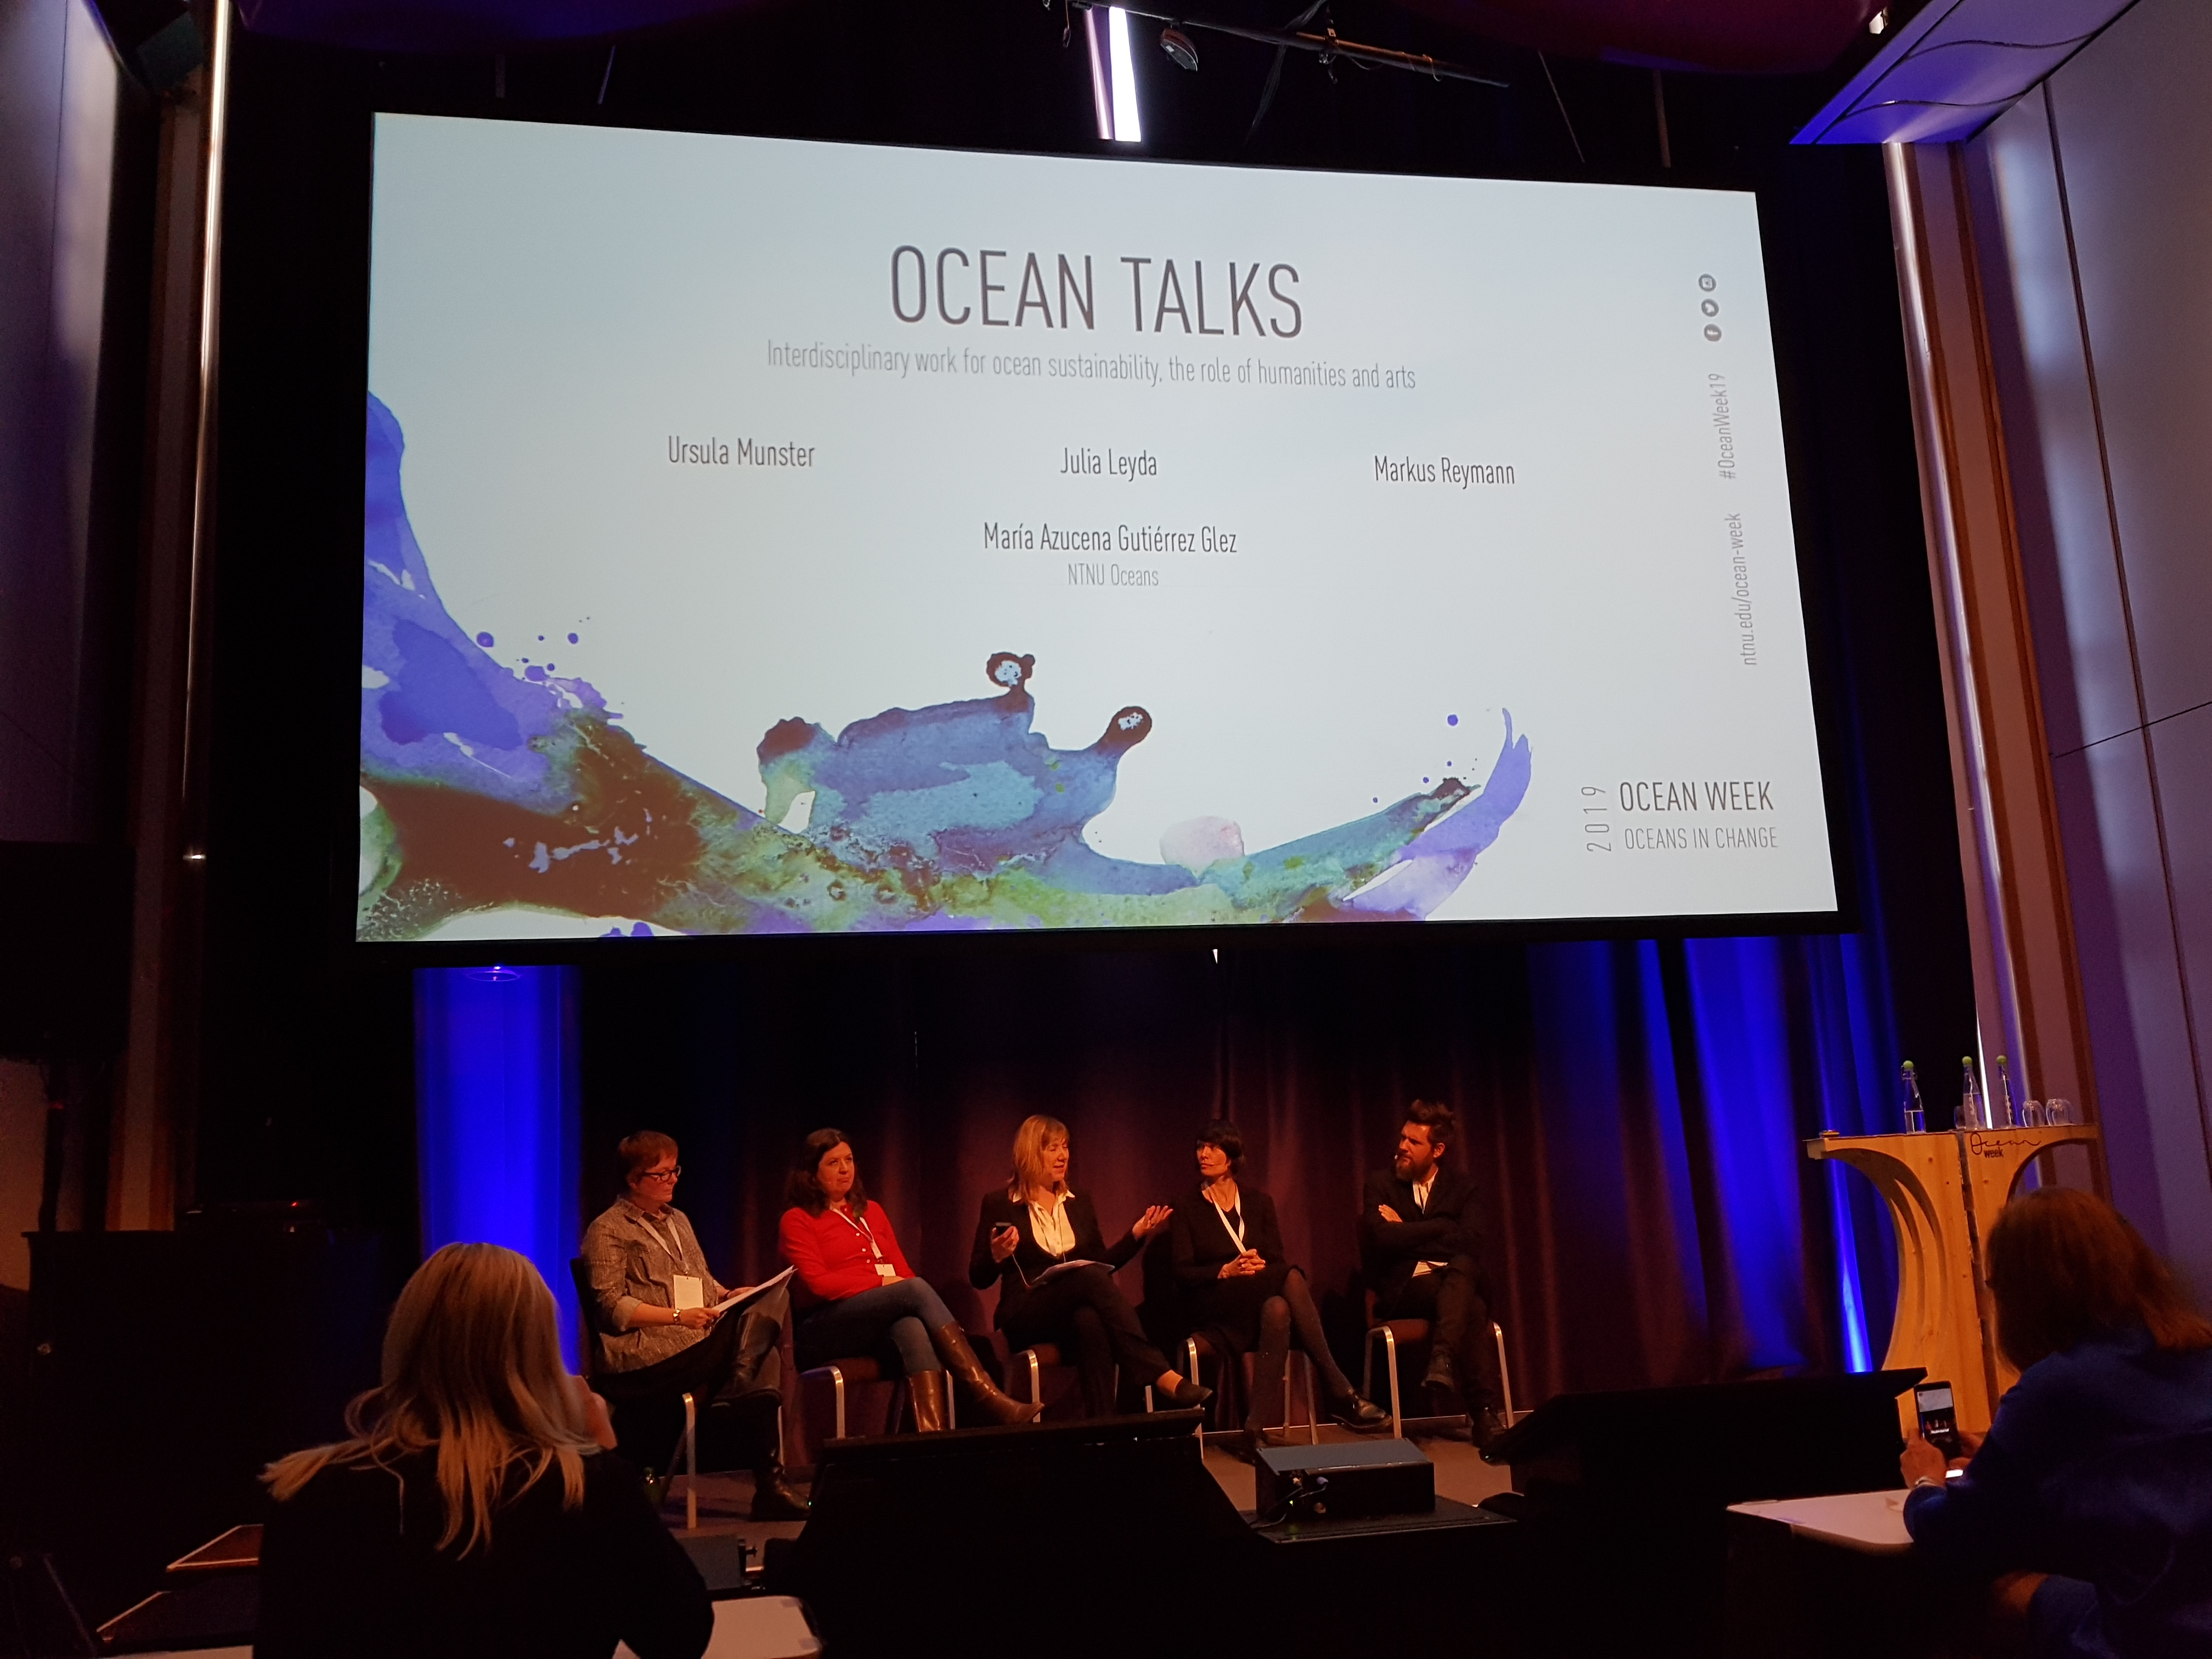 Oher Voices: Refleksjoner over Ocean Week 2019